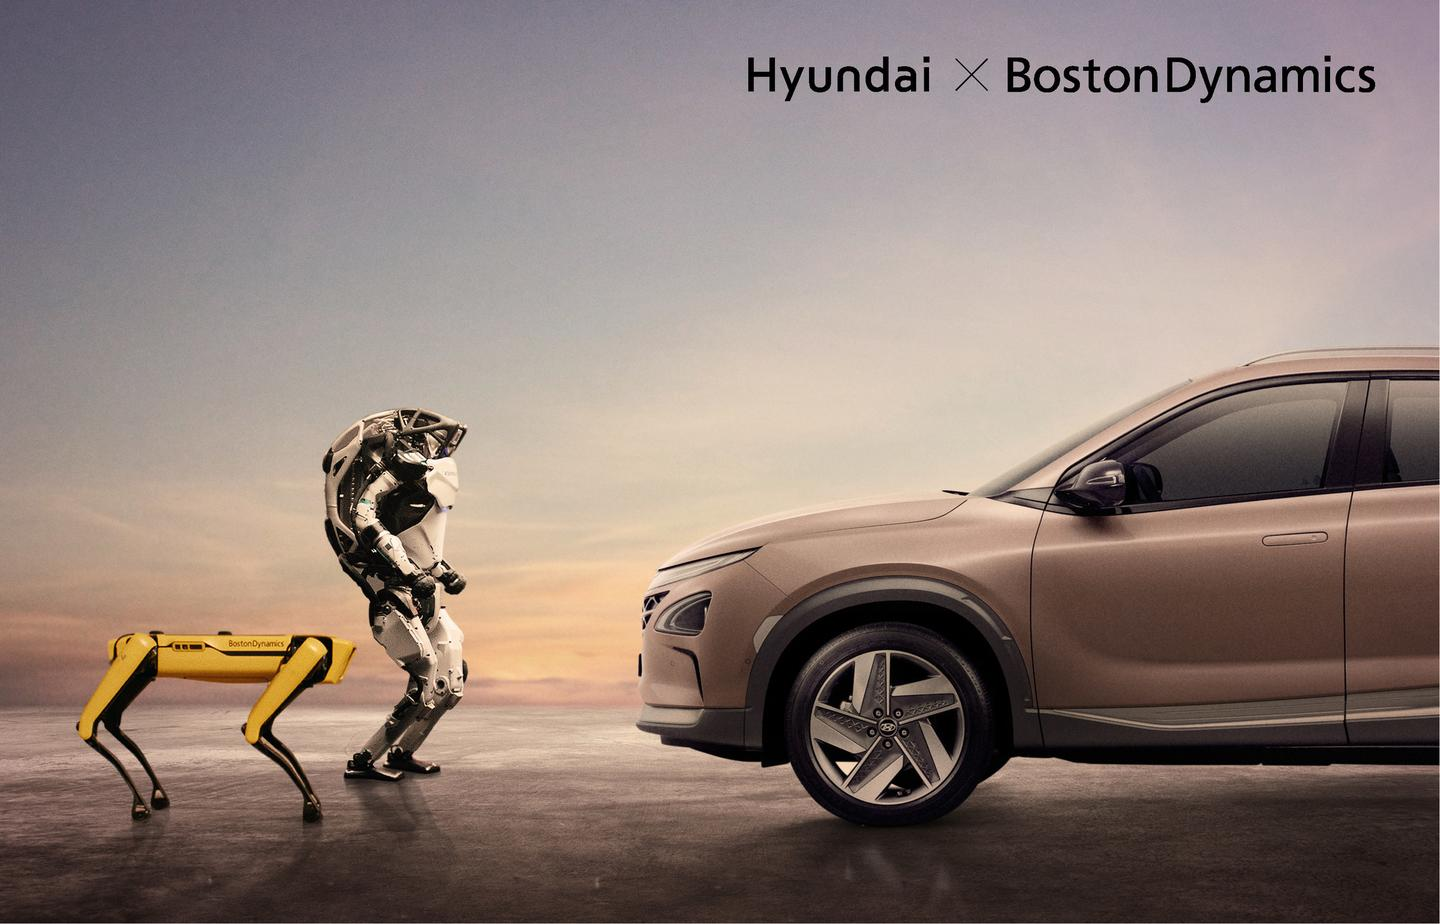 Hyundai has acquired a controlling stake in robotics firm Boston Dynamics